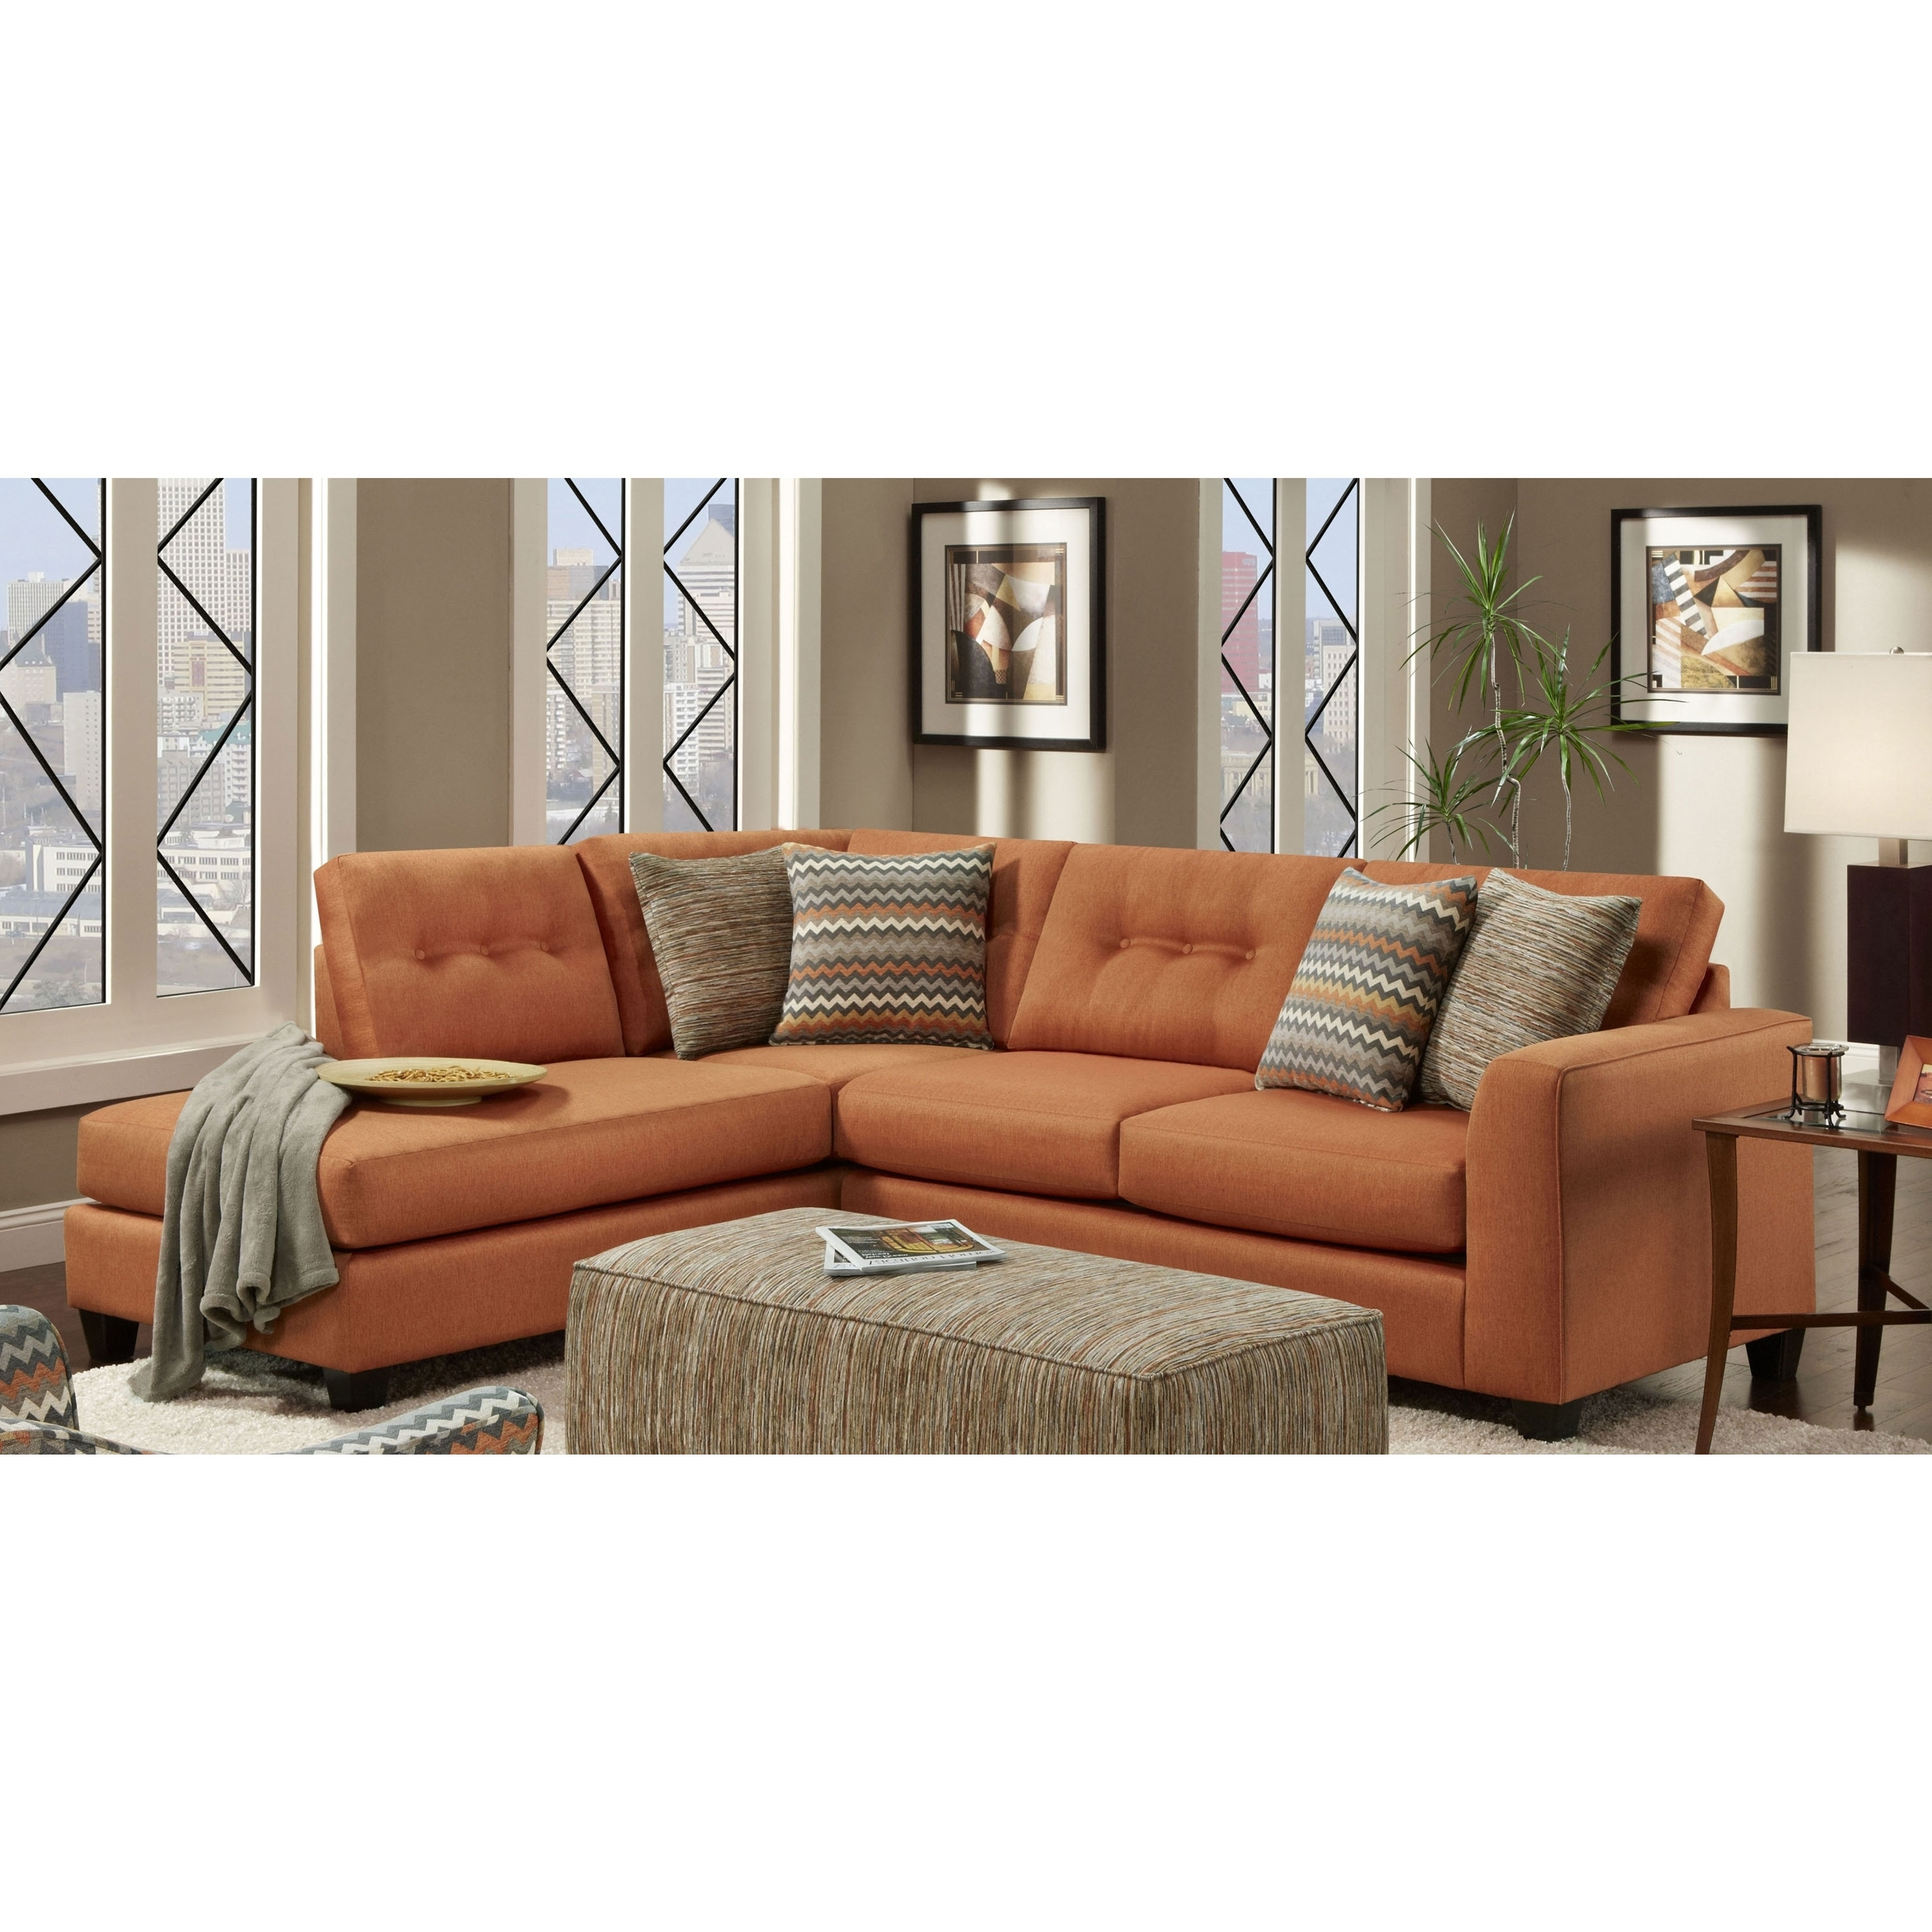 Favorite Sectional Sofa: Best Seller Sectional Sofas Phoenix Leather With Phoenix Arizona Sectional Sofas (View 15 of 20)